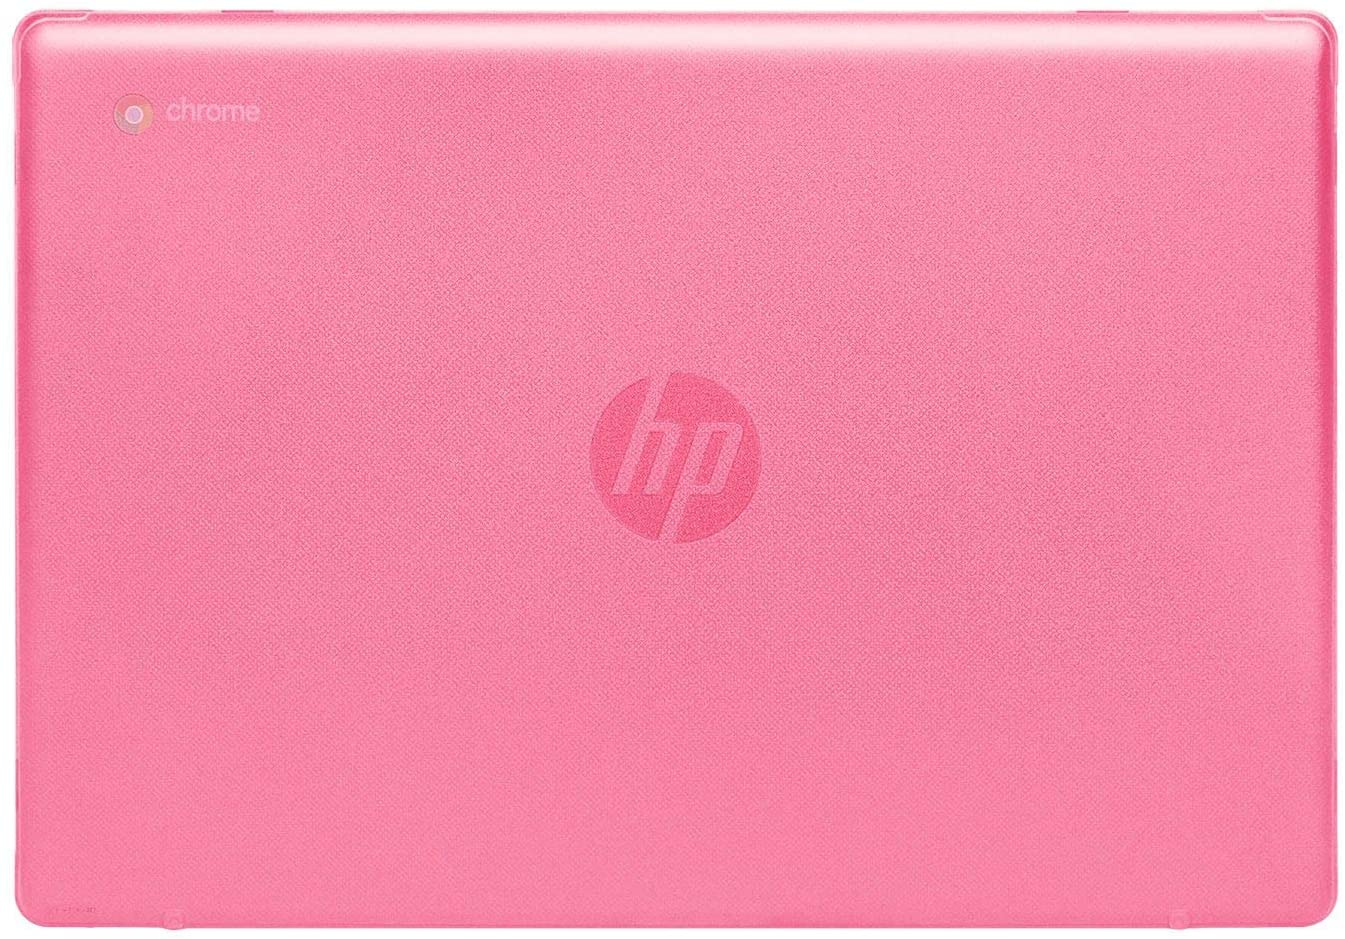 "mCover Hard Shell Case for 2020 14"" HP Chromebook 14 G6 (NOT Compatible with Older HP C14 G1 / G2 / G3 / G4/ G5 Series) laptops (Pink)"